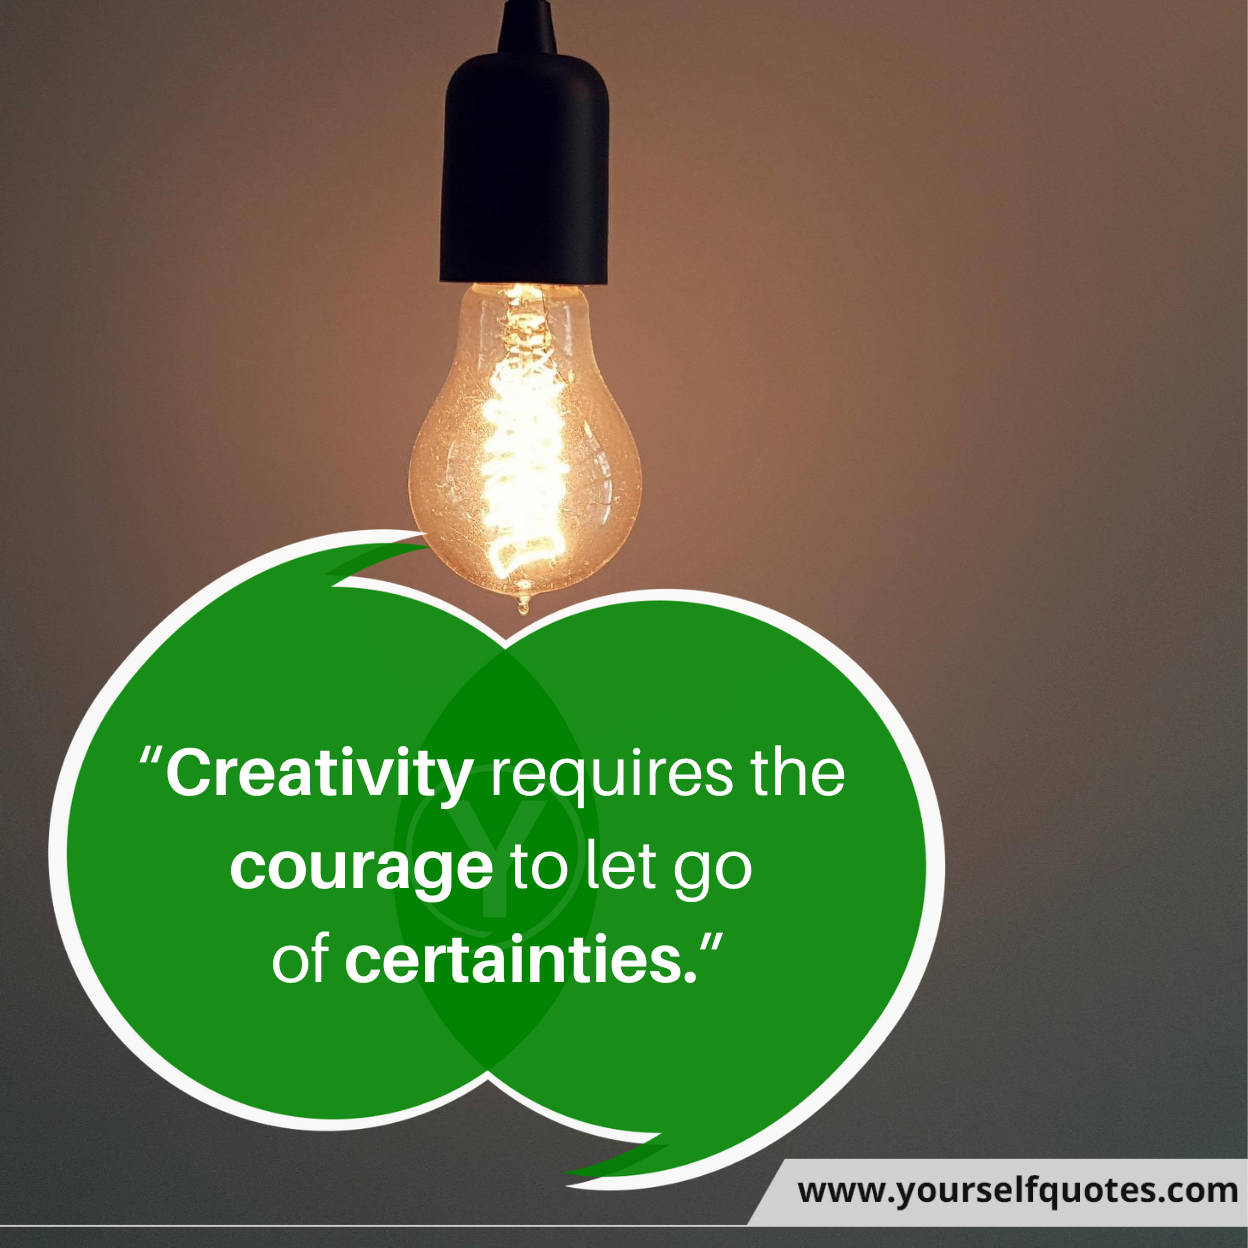 Quotes For Creativity Images